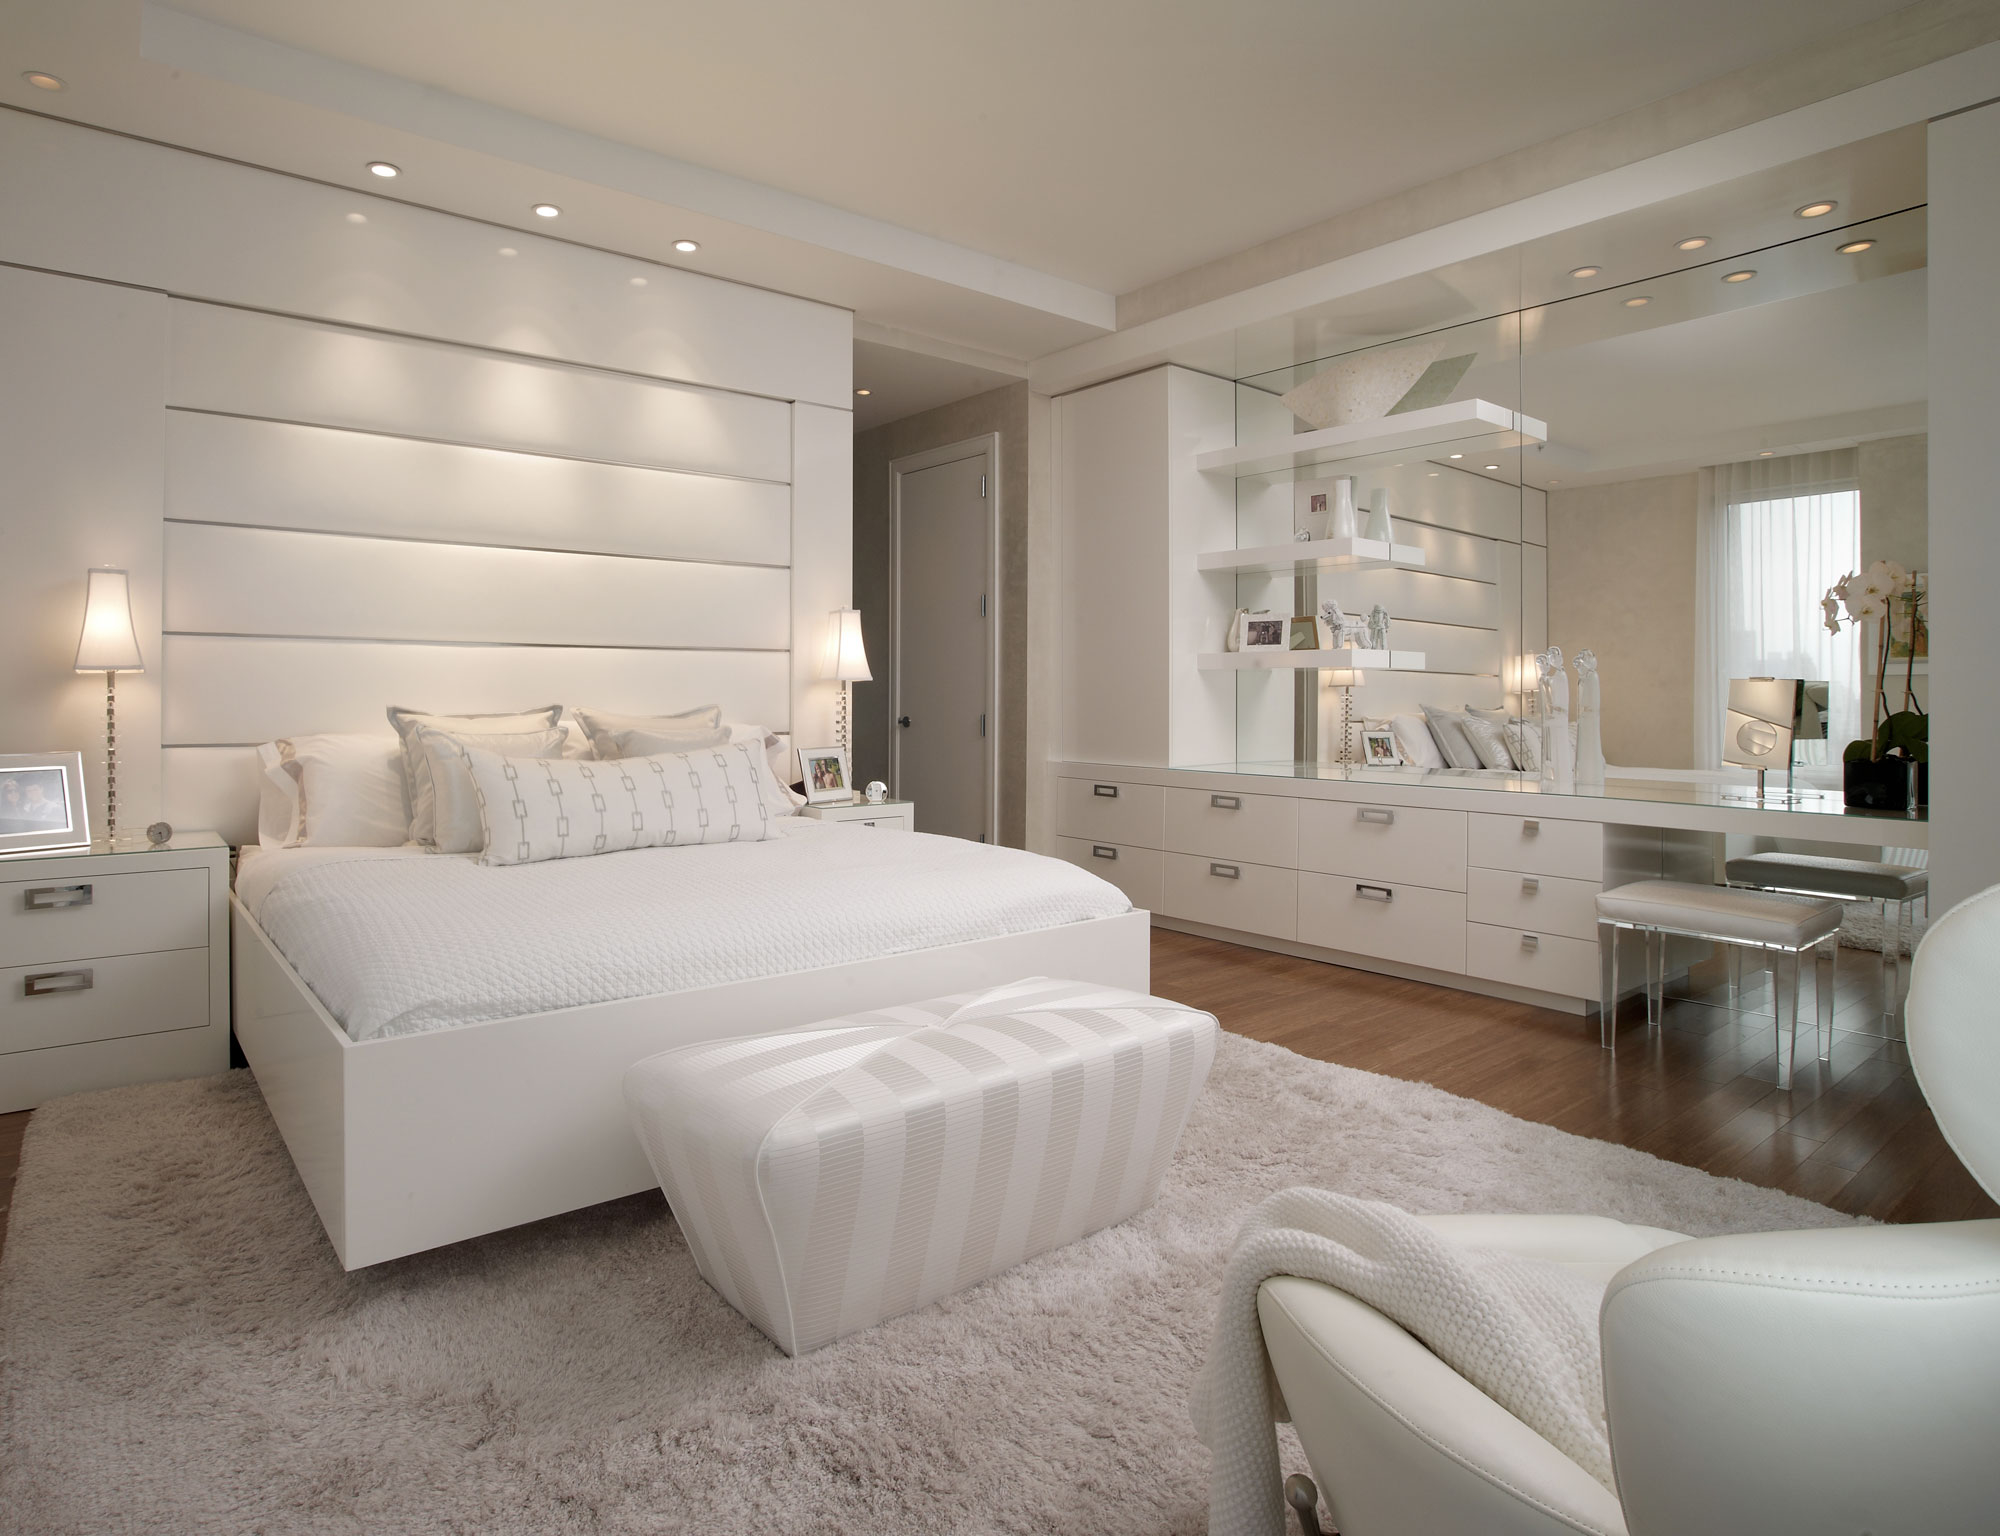 Glamorous Bedroom Luxury Look (View 4 of 9)